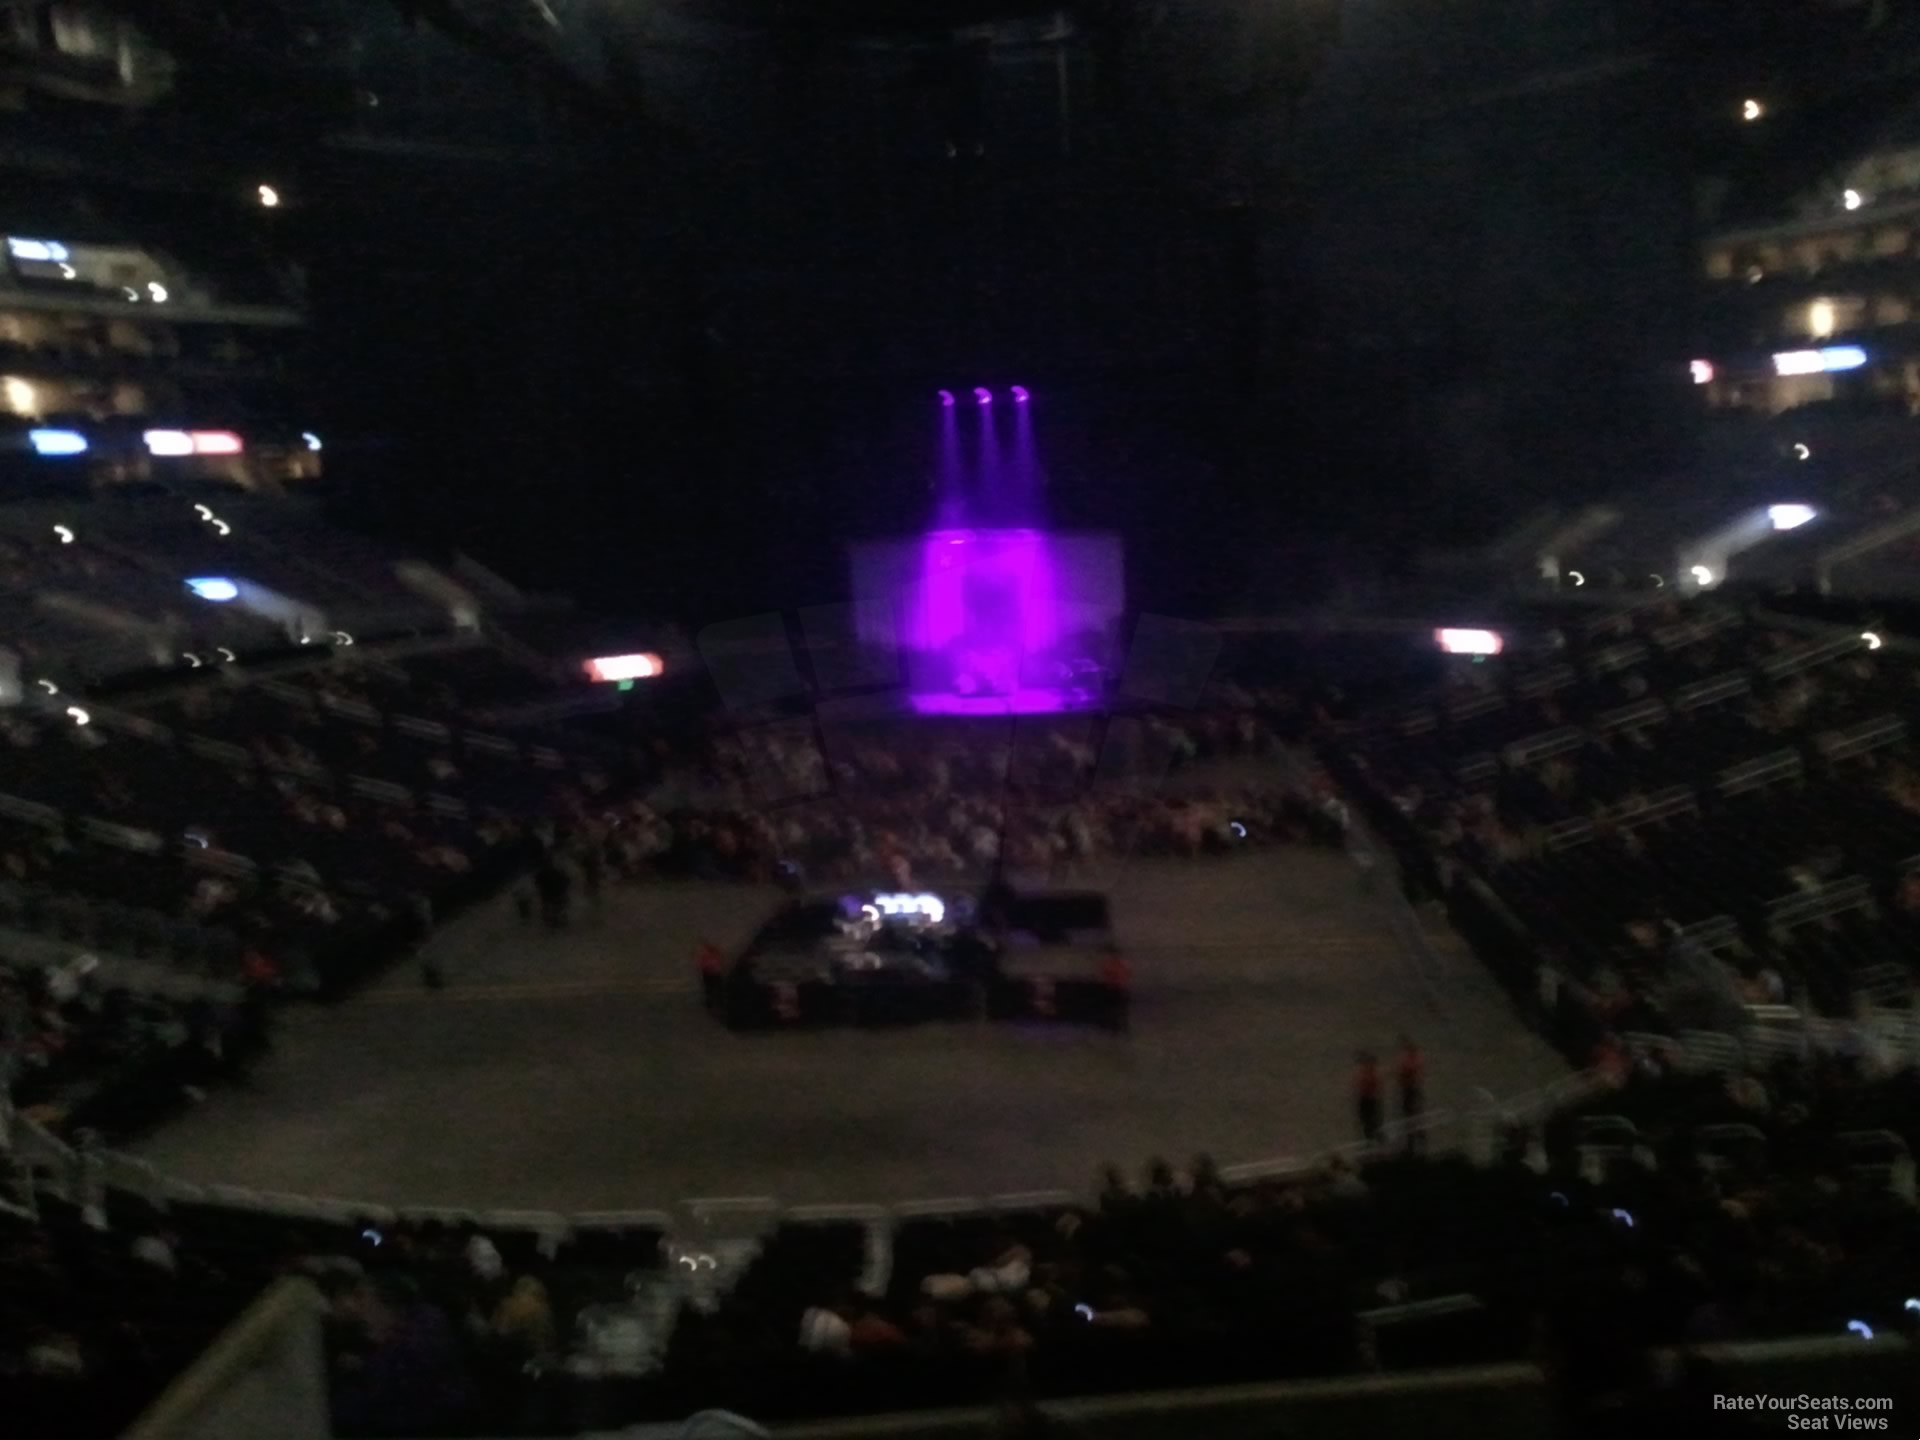 staples center section 207 concert seating - rateyourseats